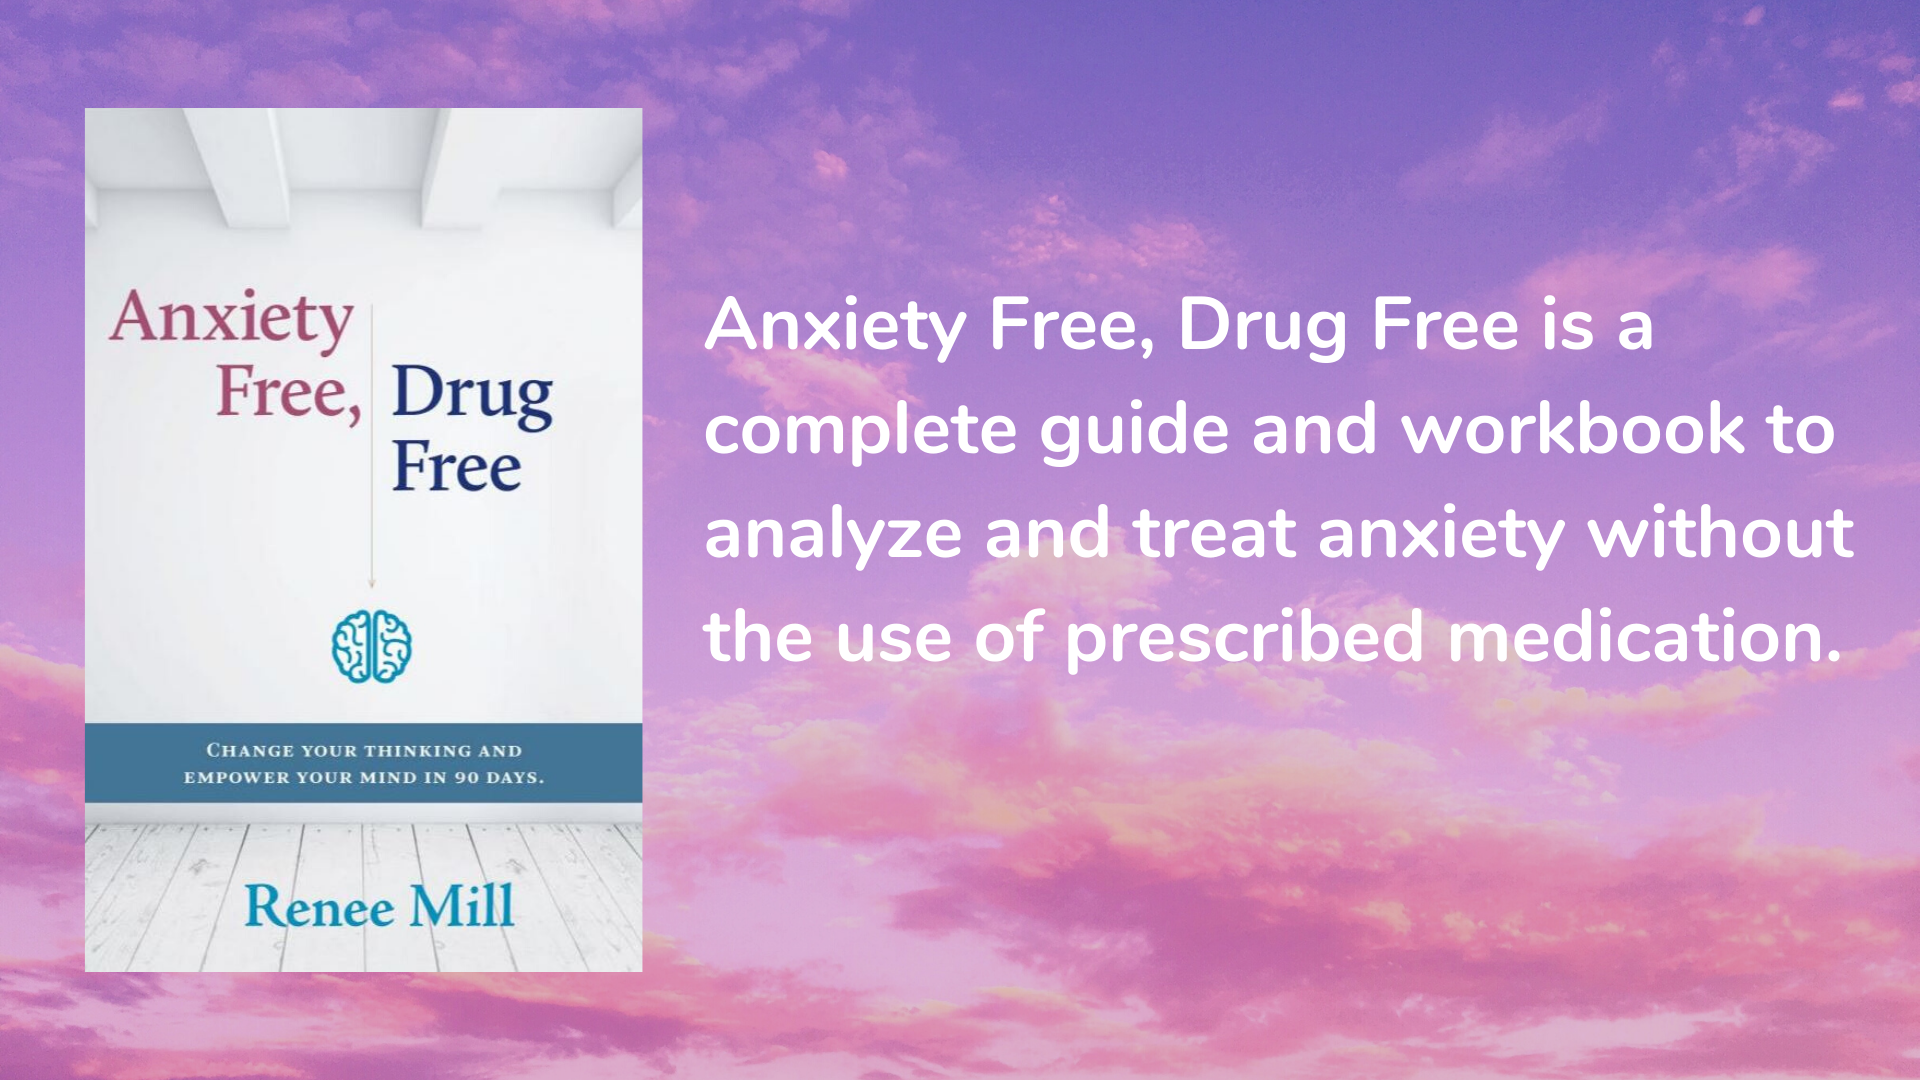 Anxiety Free, Drug Free: Change Your Thinking and Empower Your Mind in 90 Days